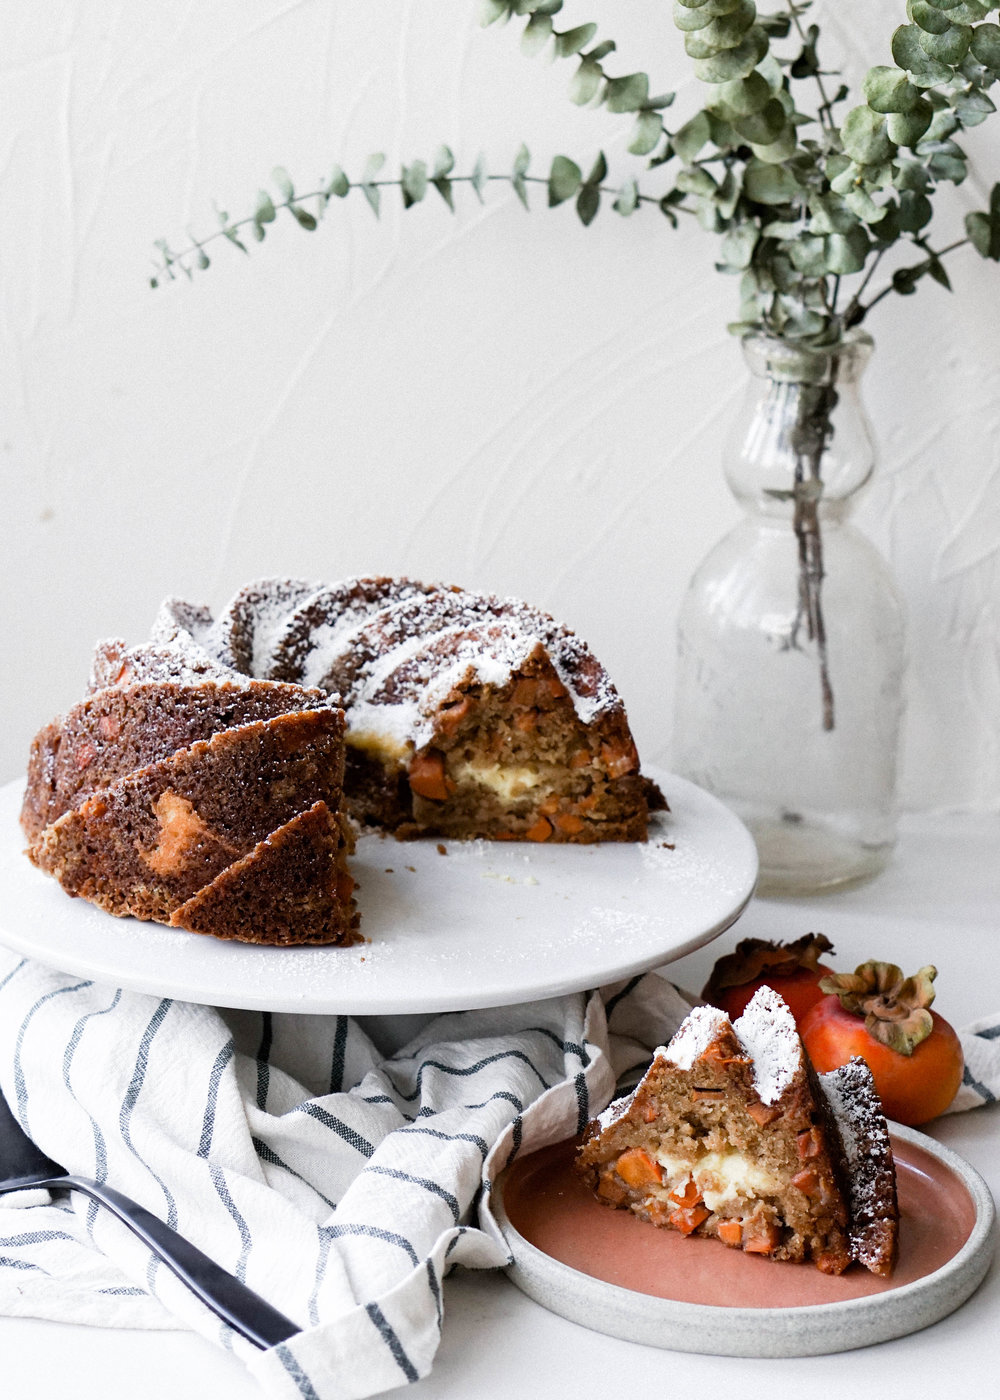 Persimmon and Cream Cheese Bundt Cake // Eat Cho Food